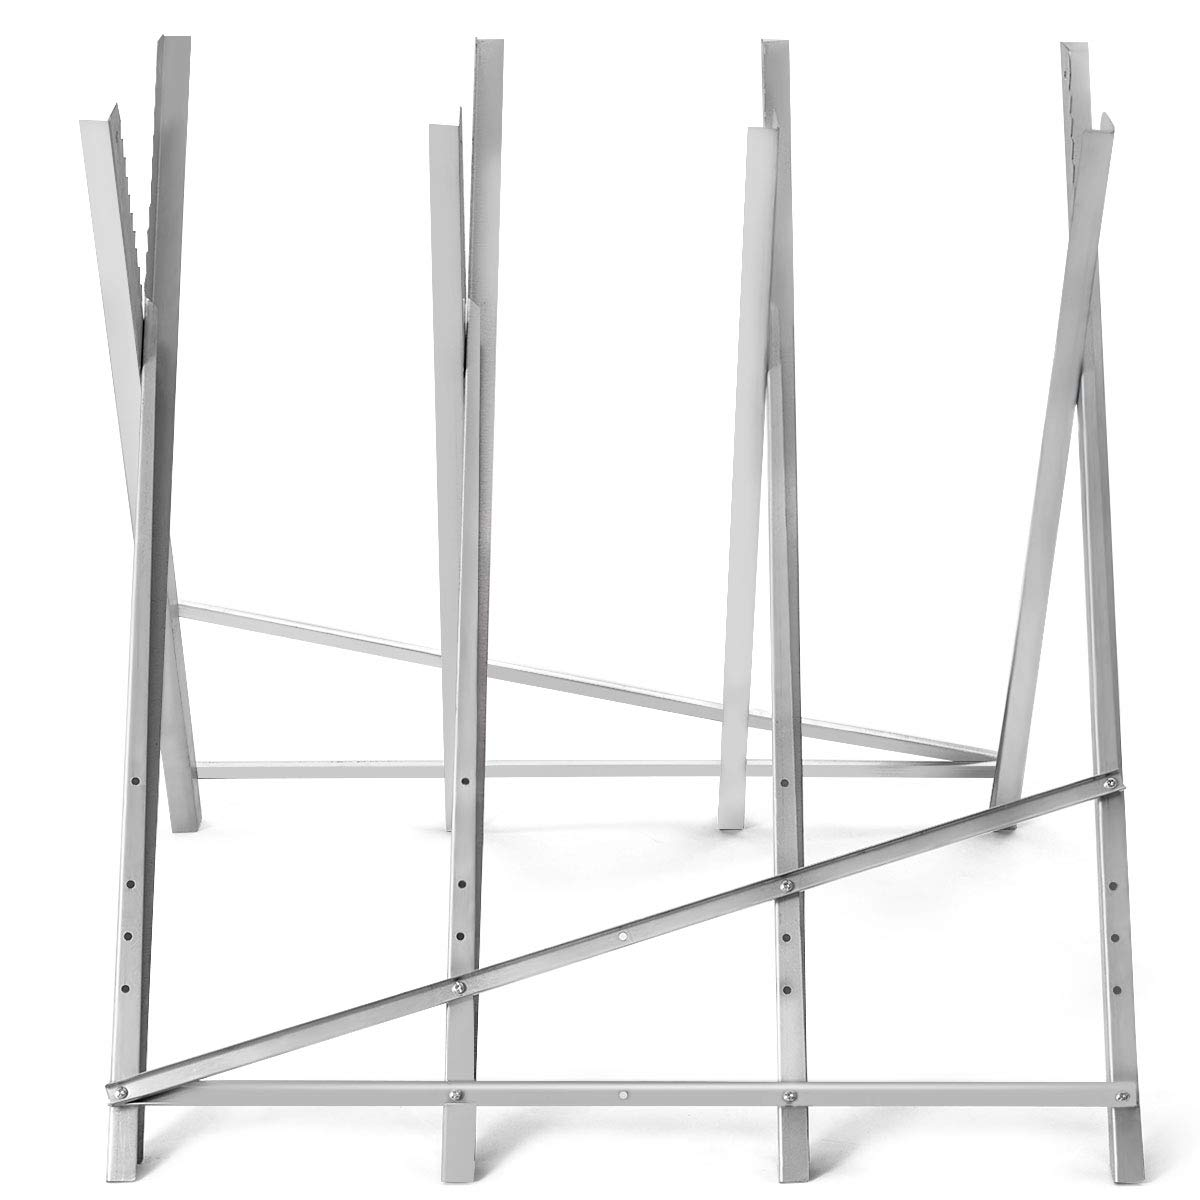 Goplus Portable Sawhorse Heavy Duty Adjustable Steel Work Support Foldable Sawhorse Stand 220 lbs Weight Capacity by Goplus (Image #5)